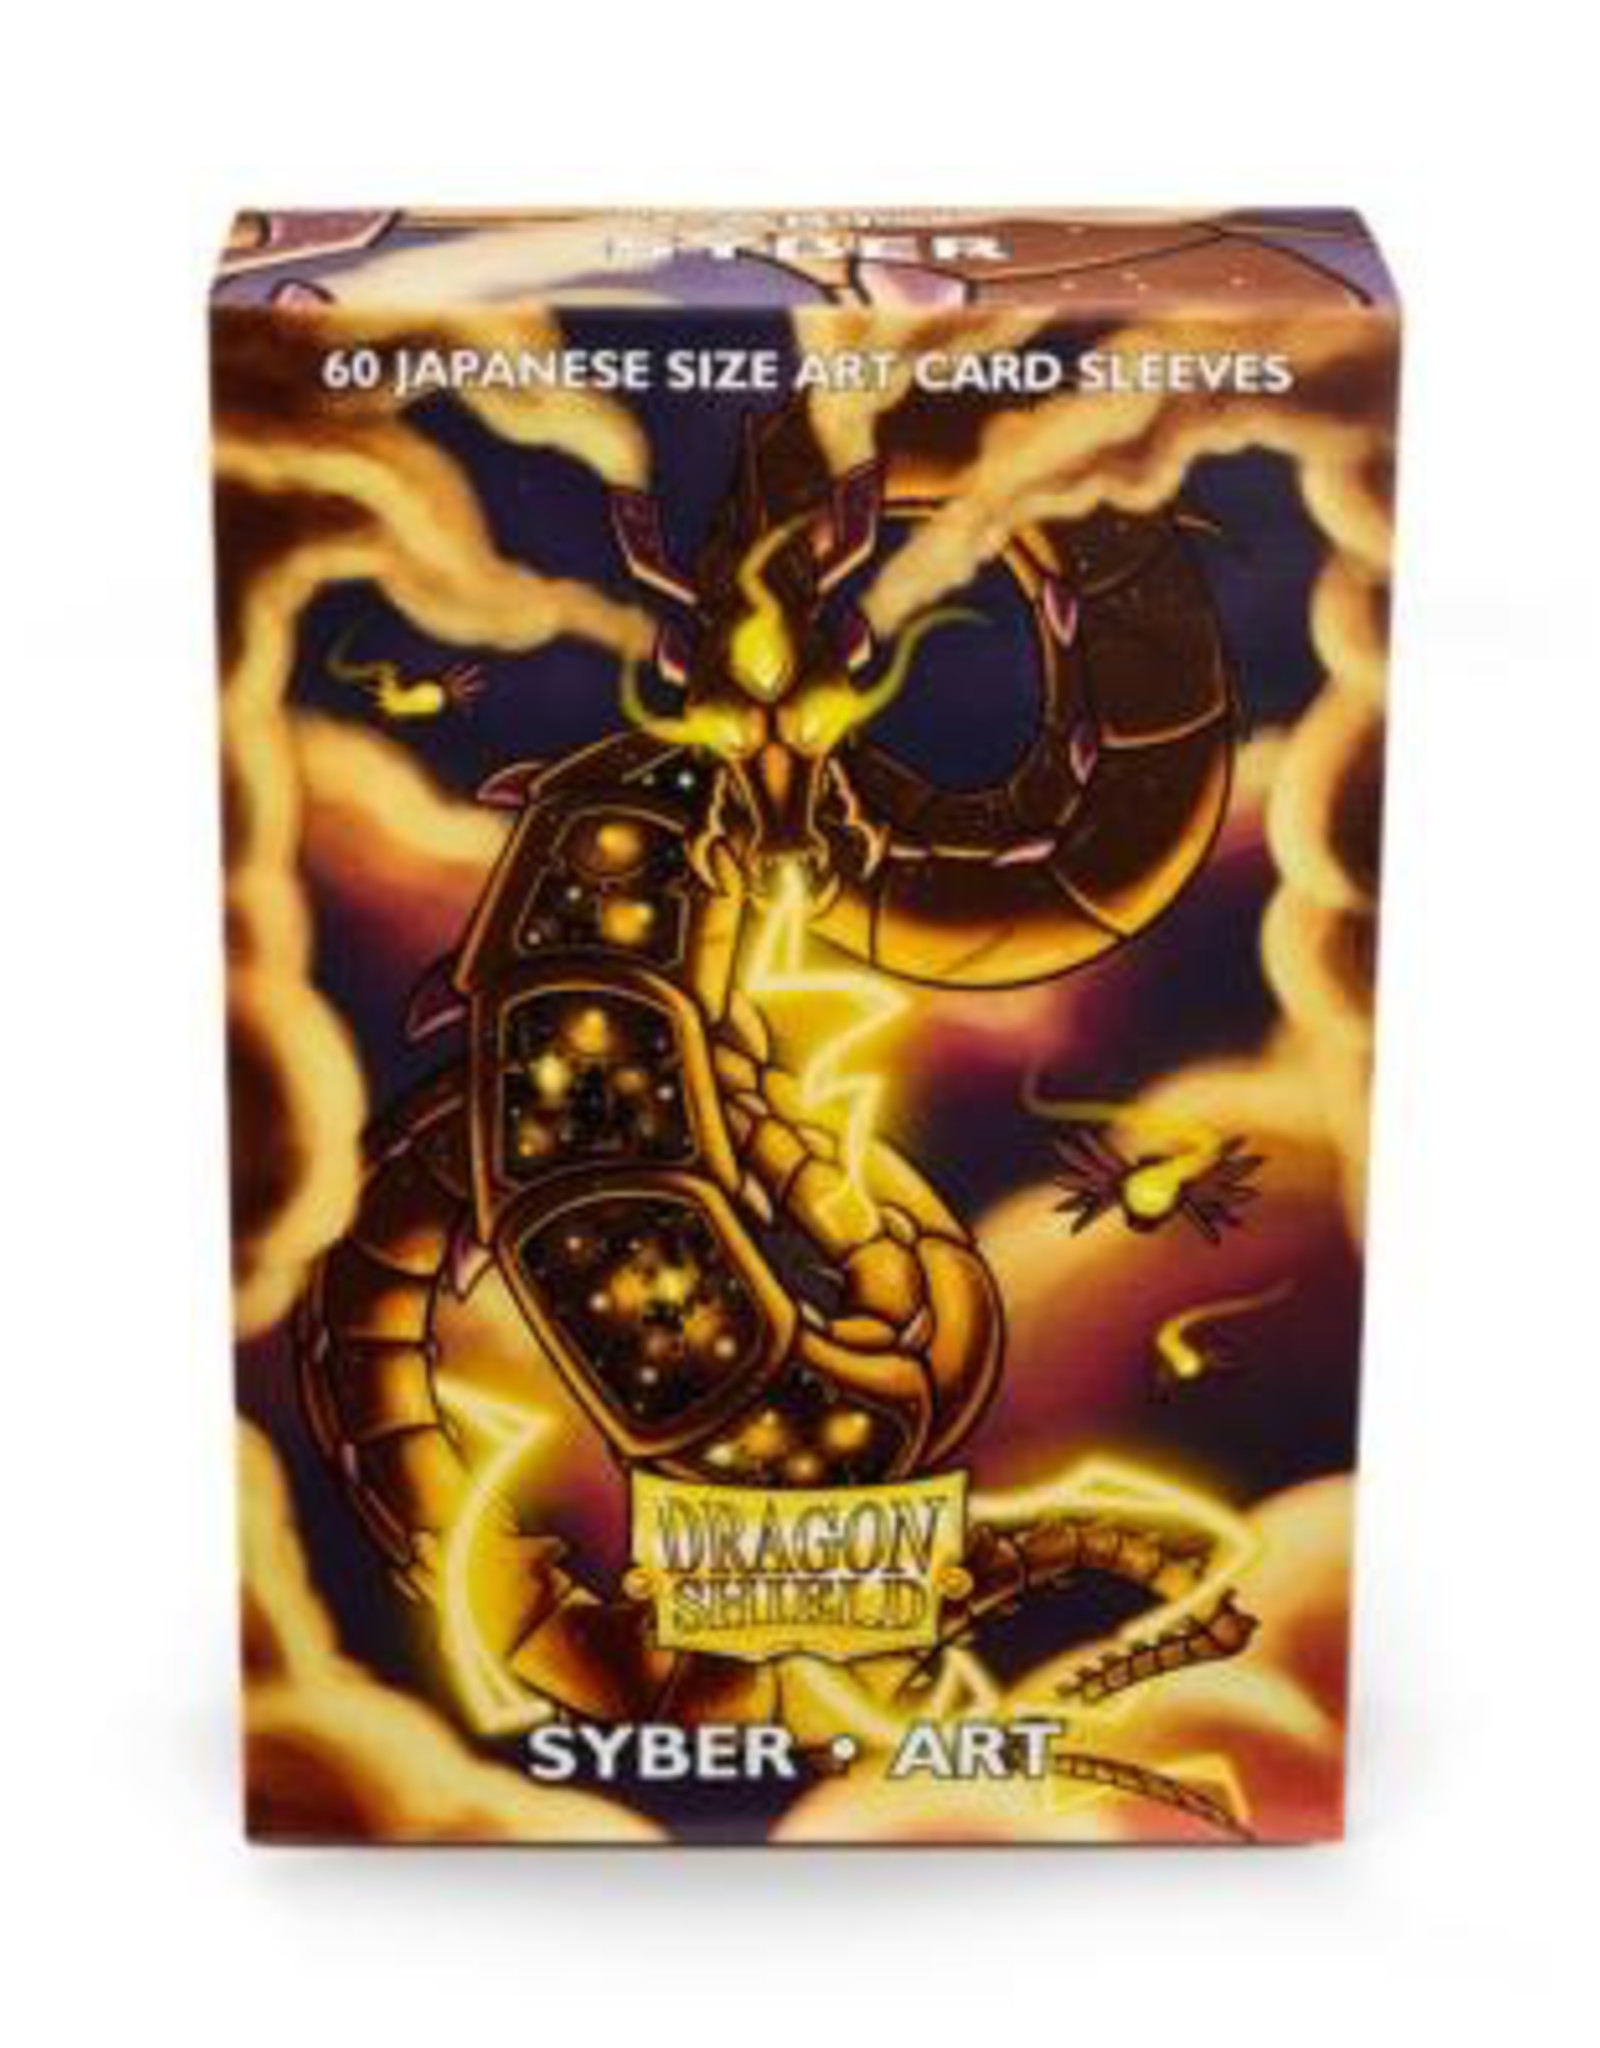 DS - Small Sleeves Dragon Shield Japanese Art Sleeves - Syber (60 Sleeves)